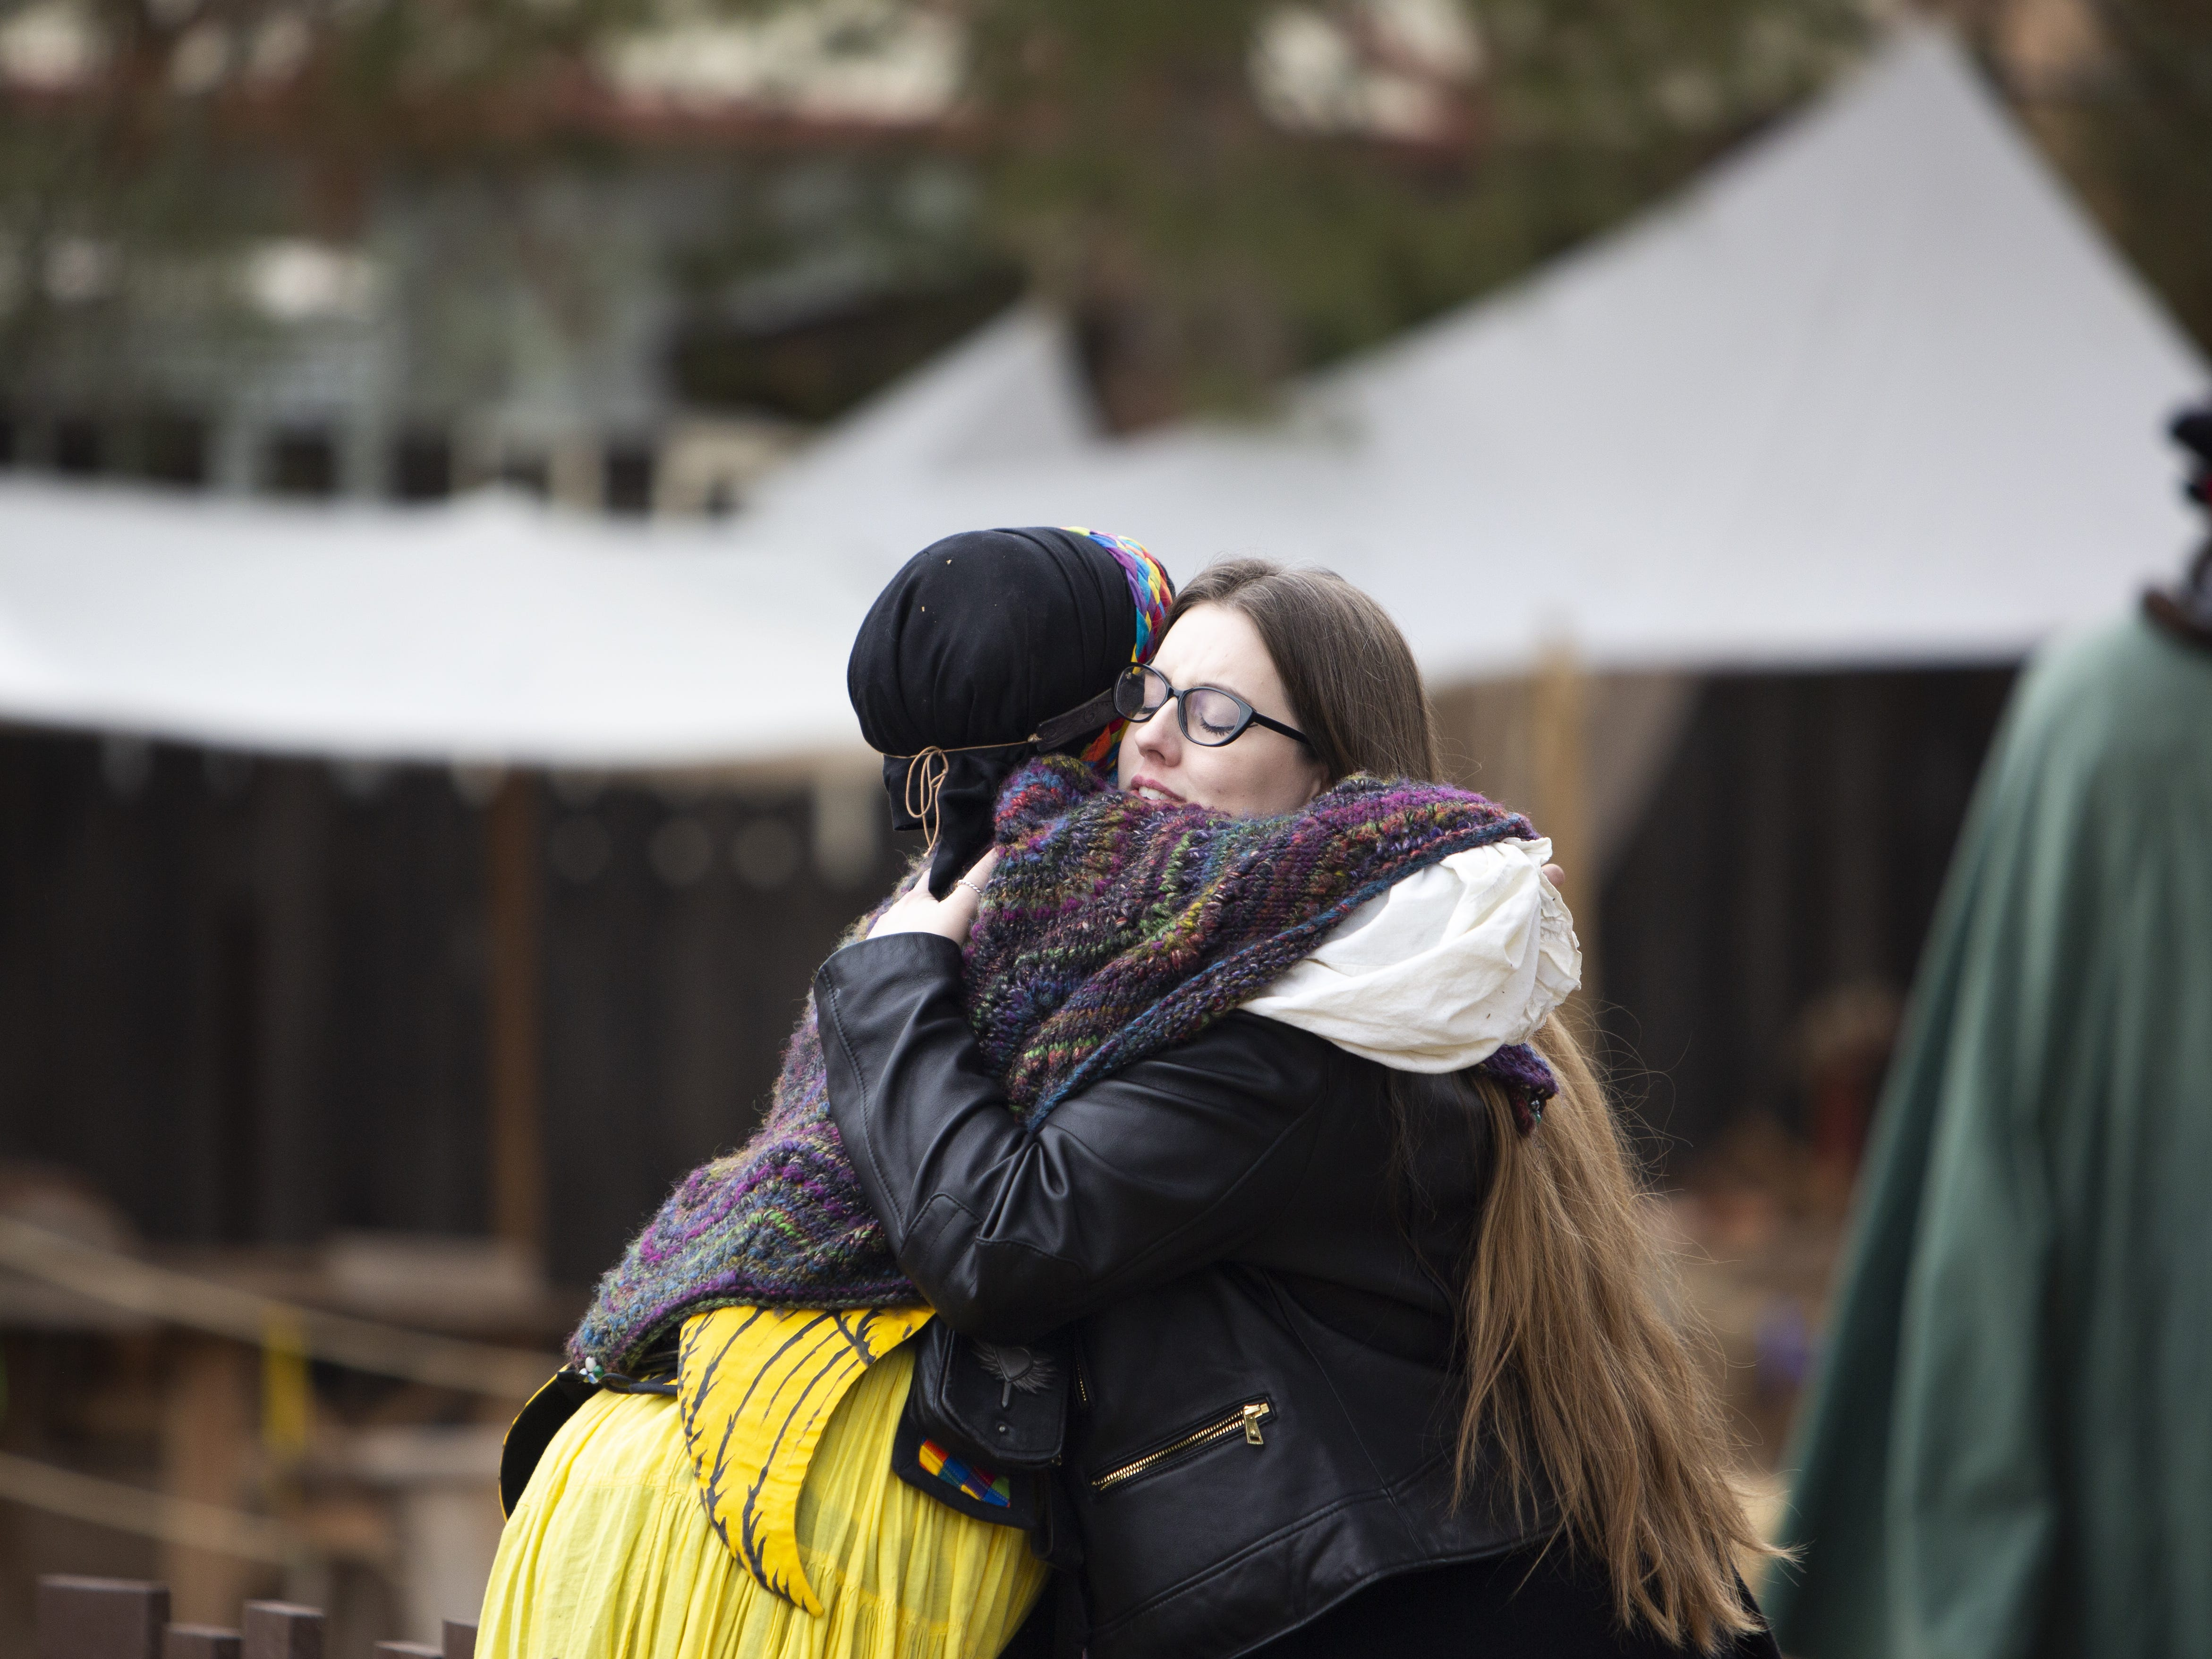 Esther Rose of The Angels: Heroines in Disguise, hugs her friend Andee Sparrow (right), at the Arizona Renaissance Festival 2019 on Feb. 9, 2019 in Gold Canyon, Ariz.